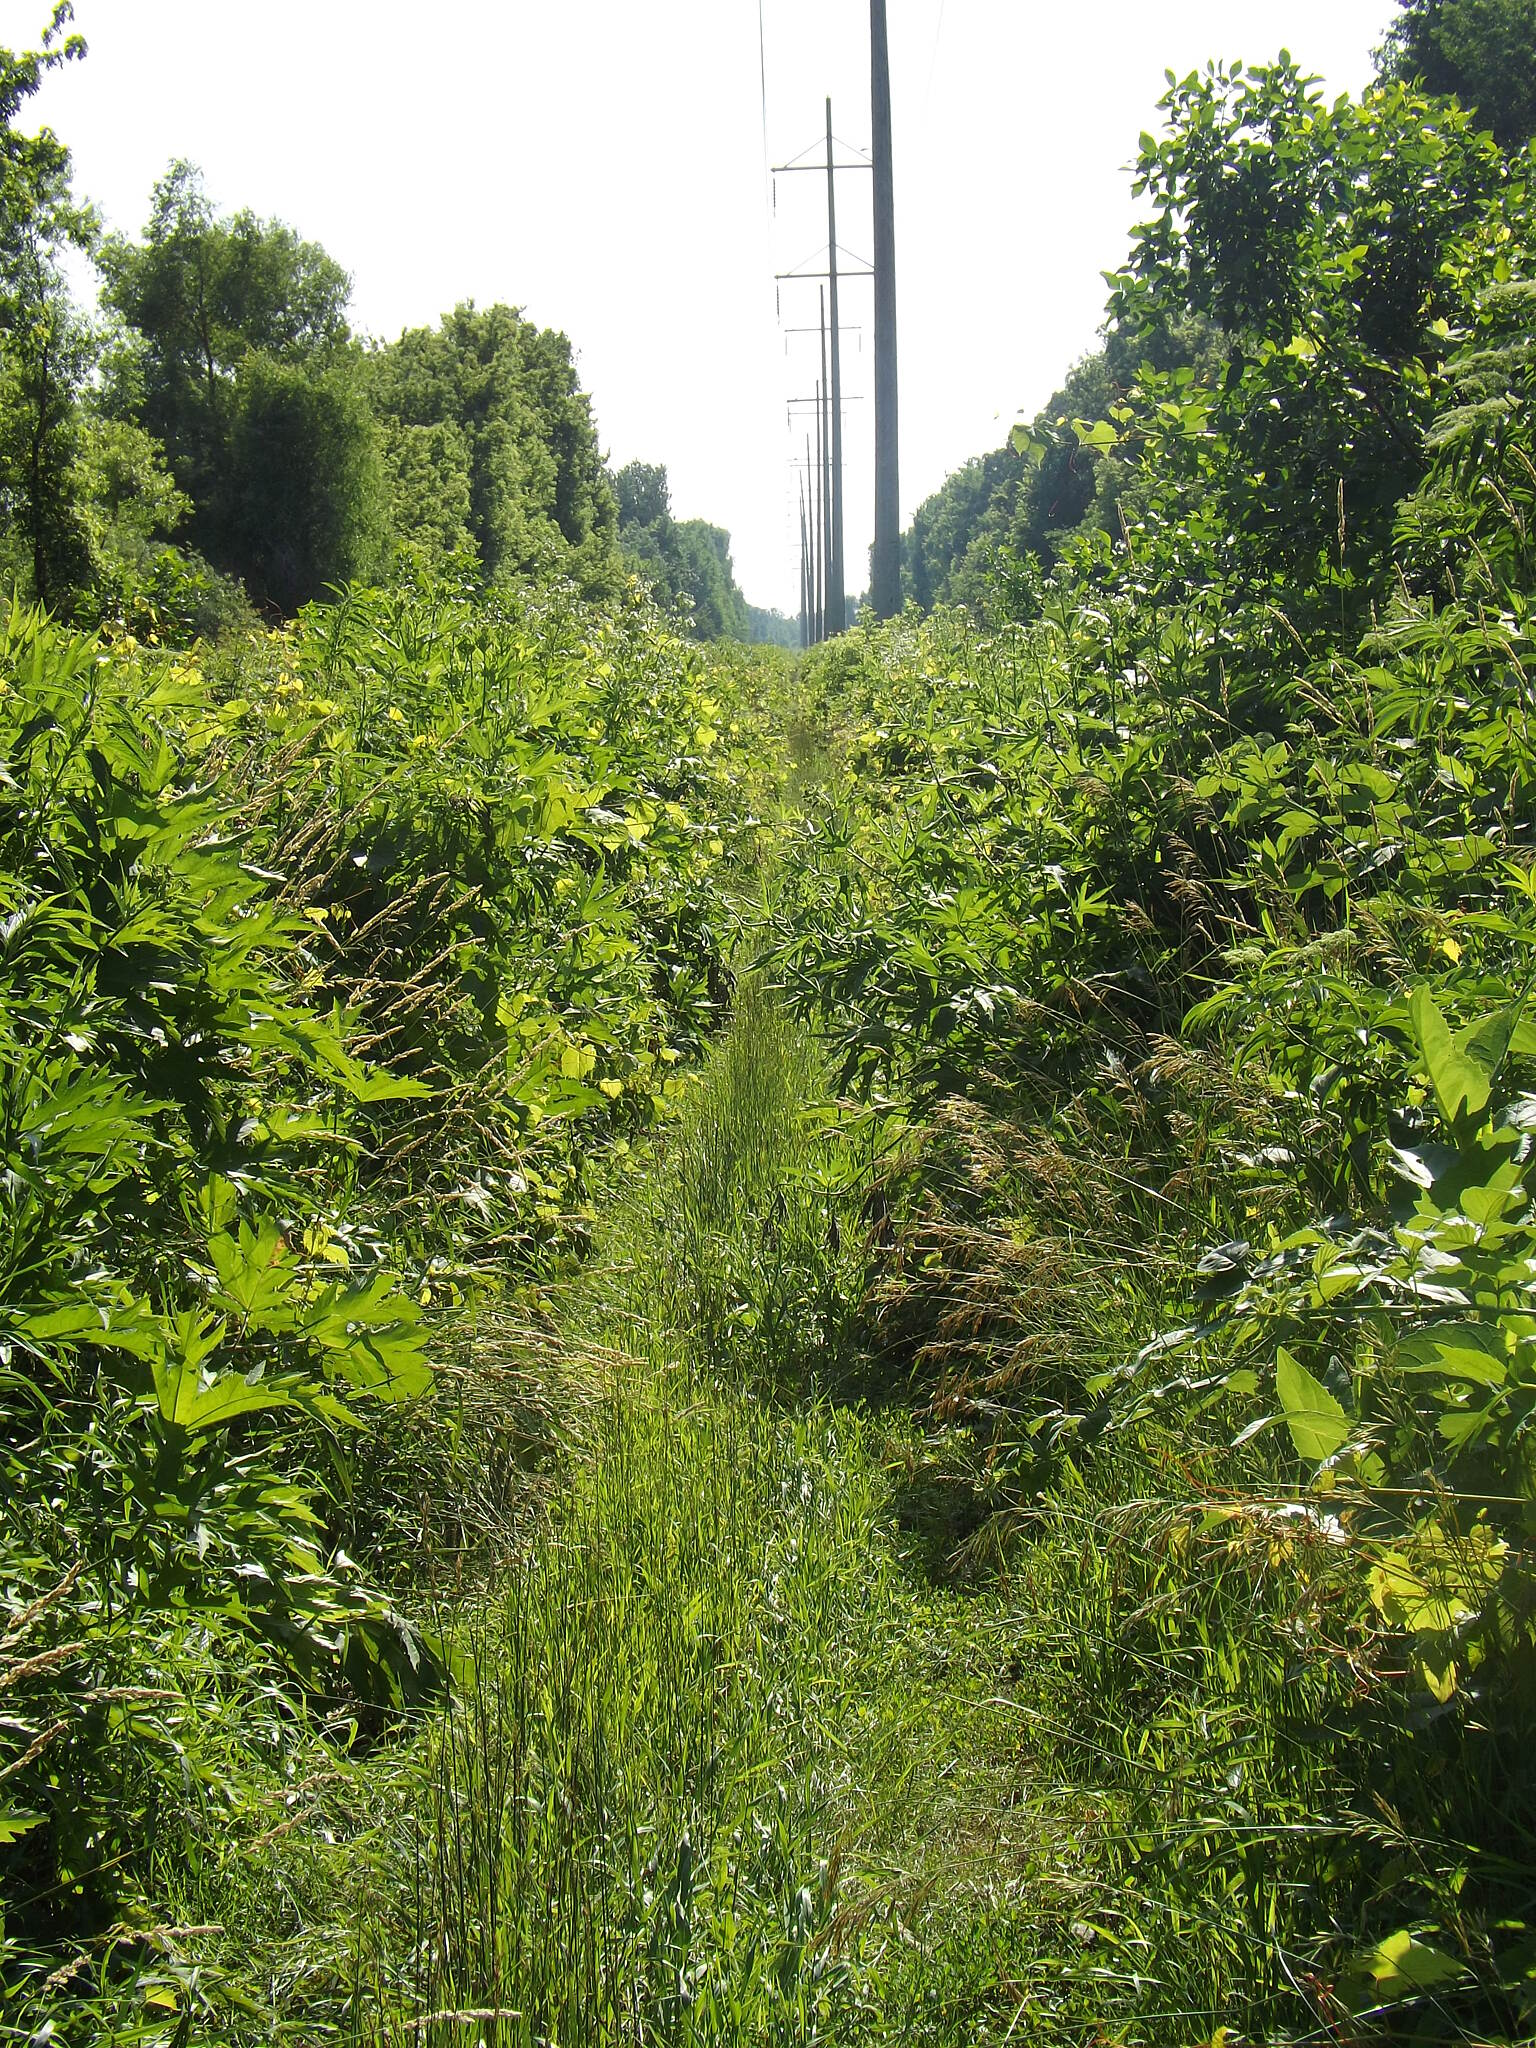 Pecatonica Prairie Trail Overgrown! The path narrows as it become choked with vegetation.